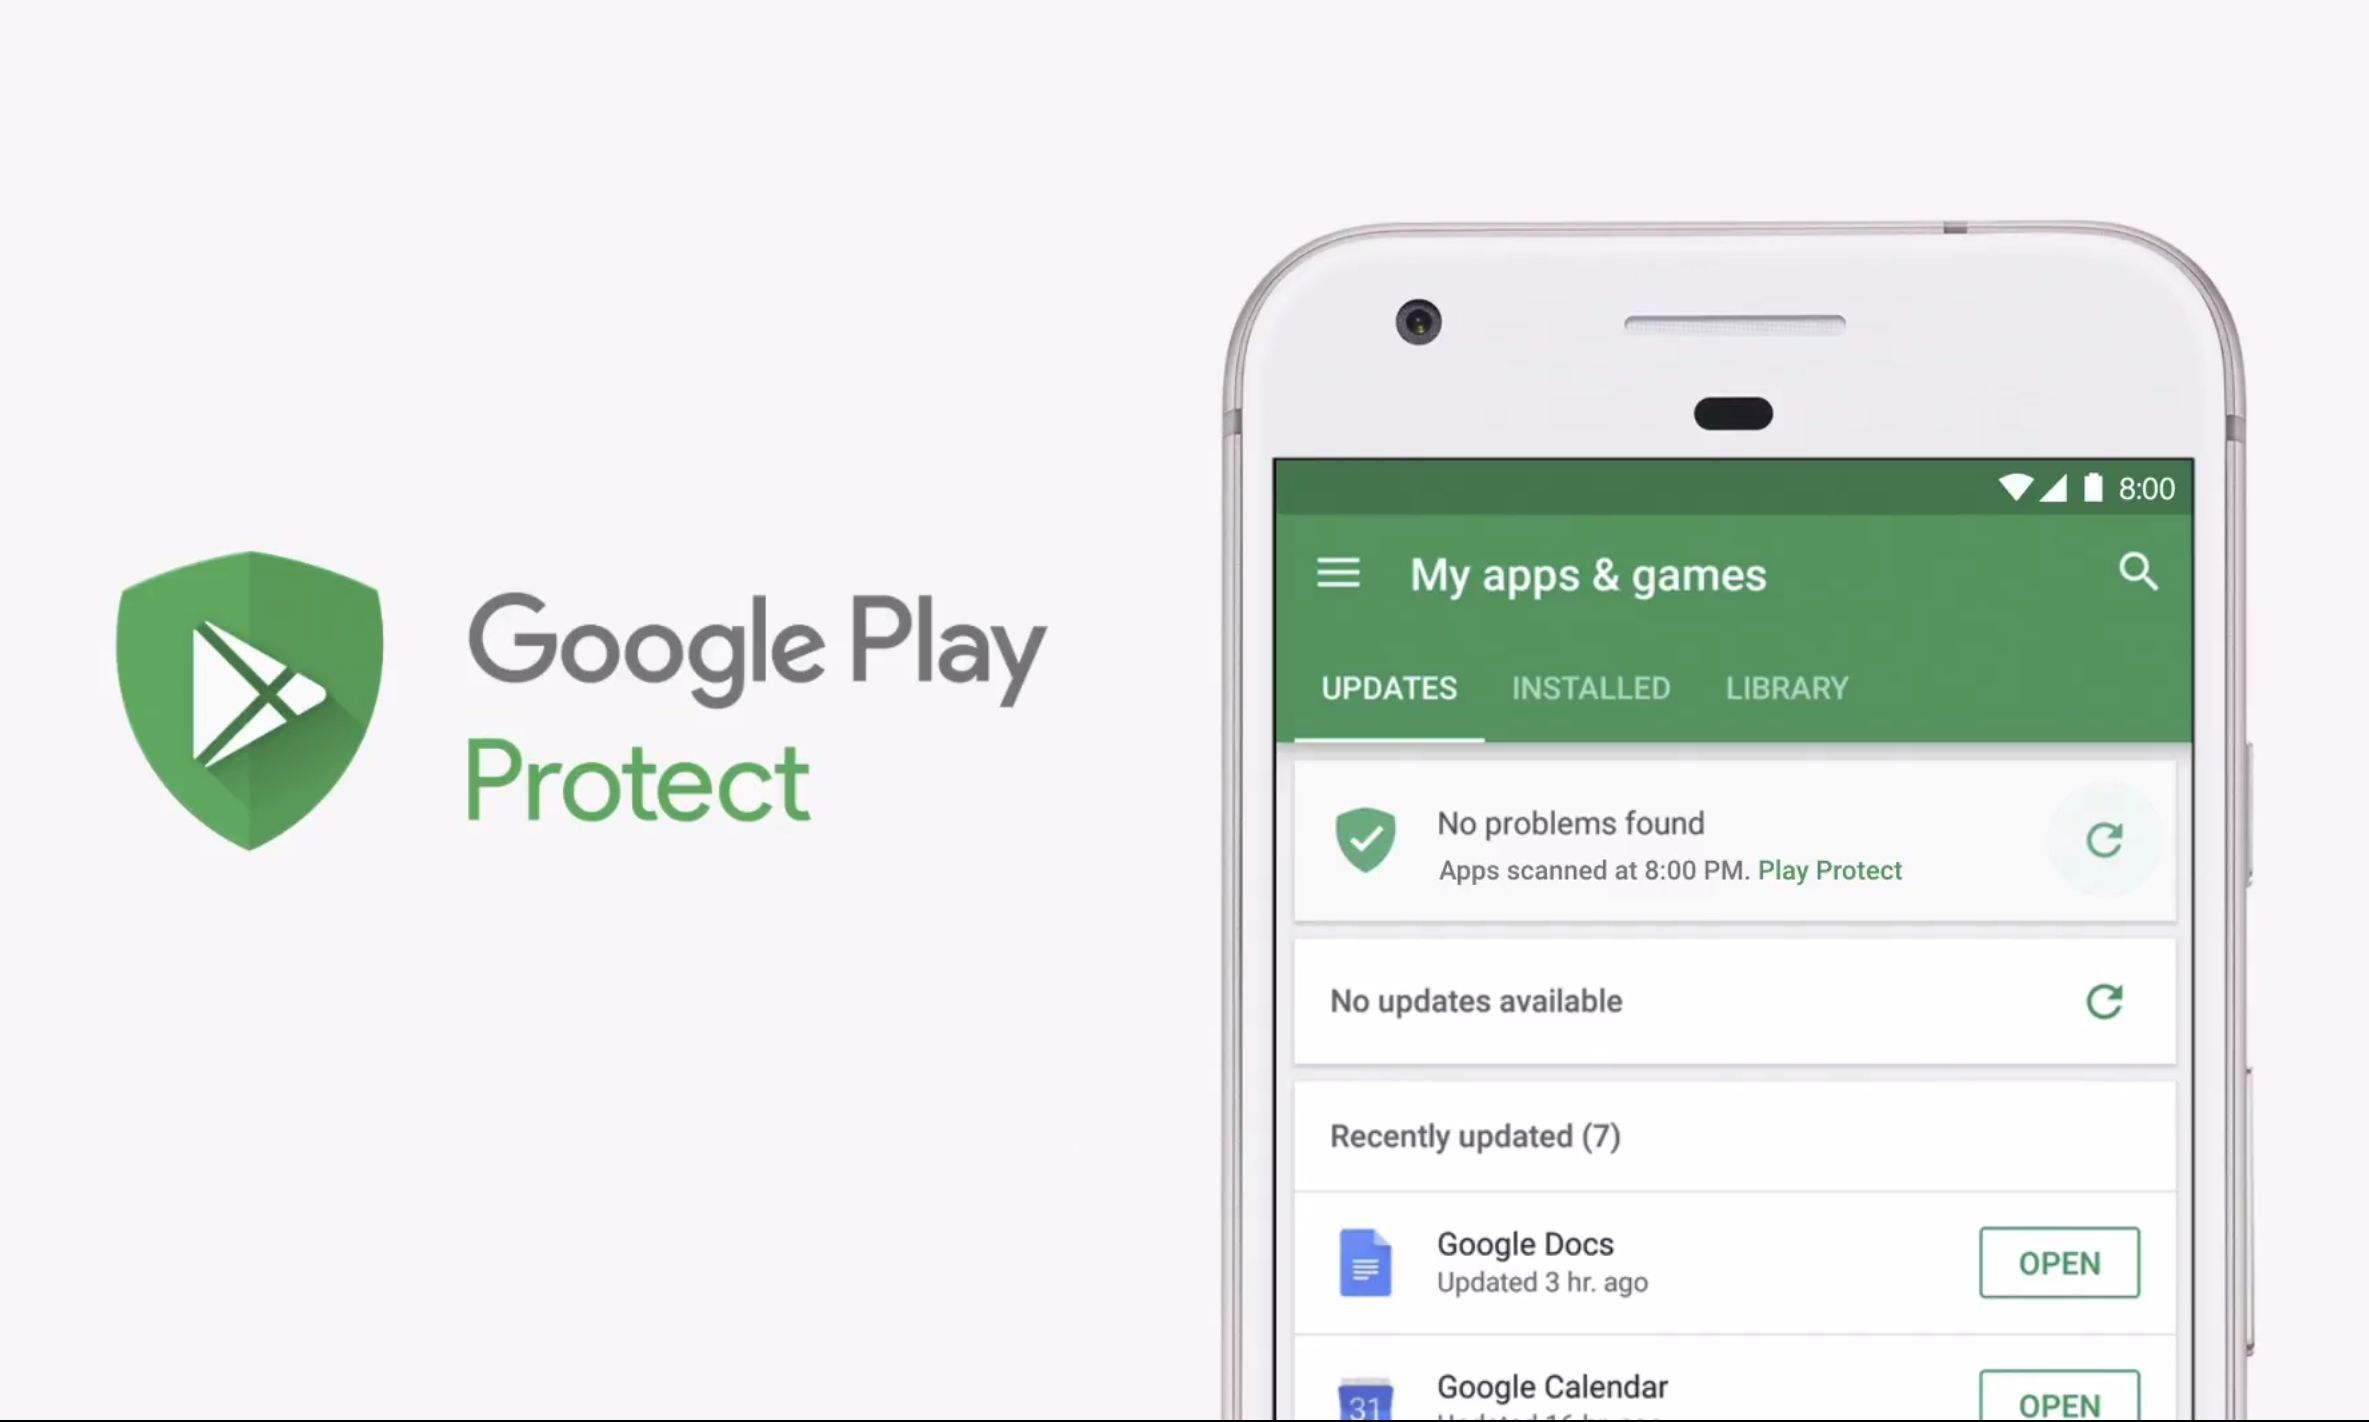 Google Play Choice Image - Card Design And Card Template